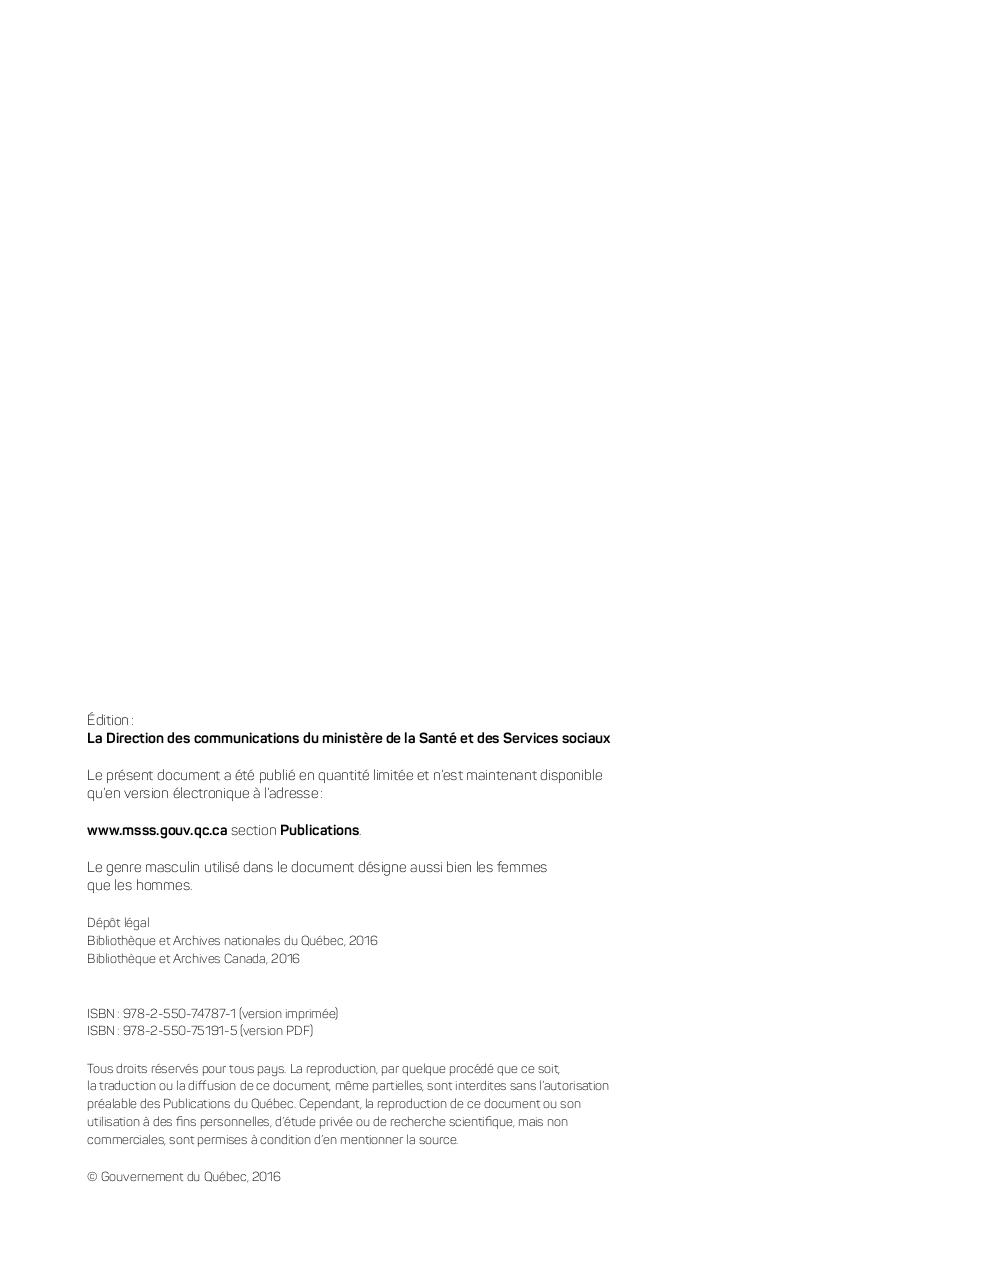 Aperçu du fichier PDF politique-de-prevention.pdf